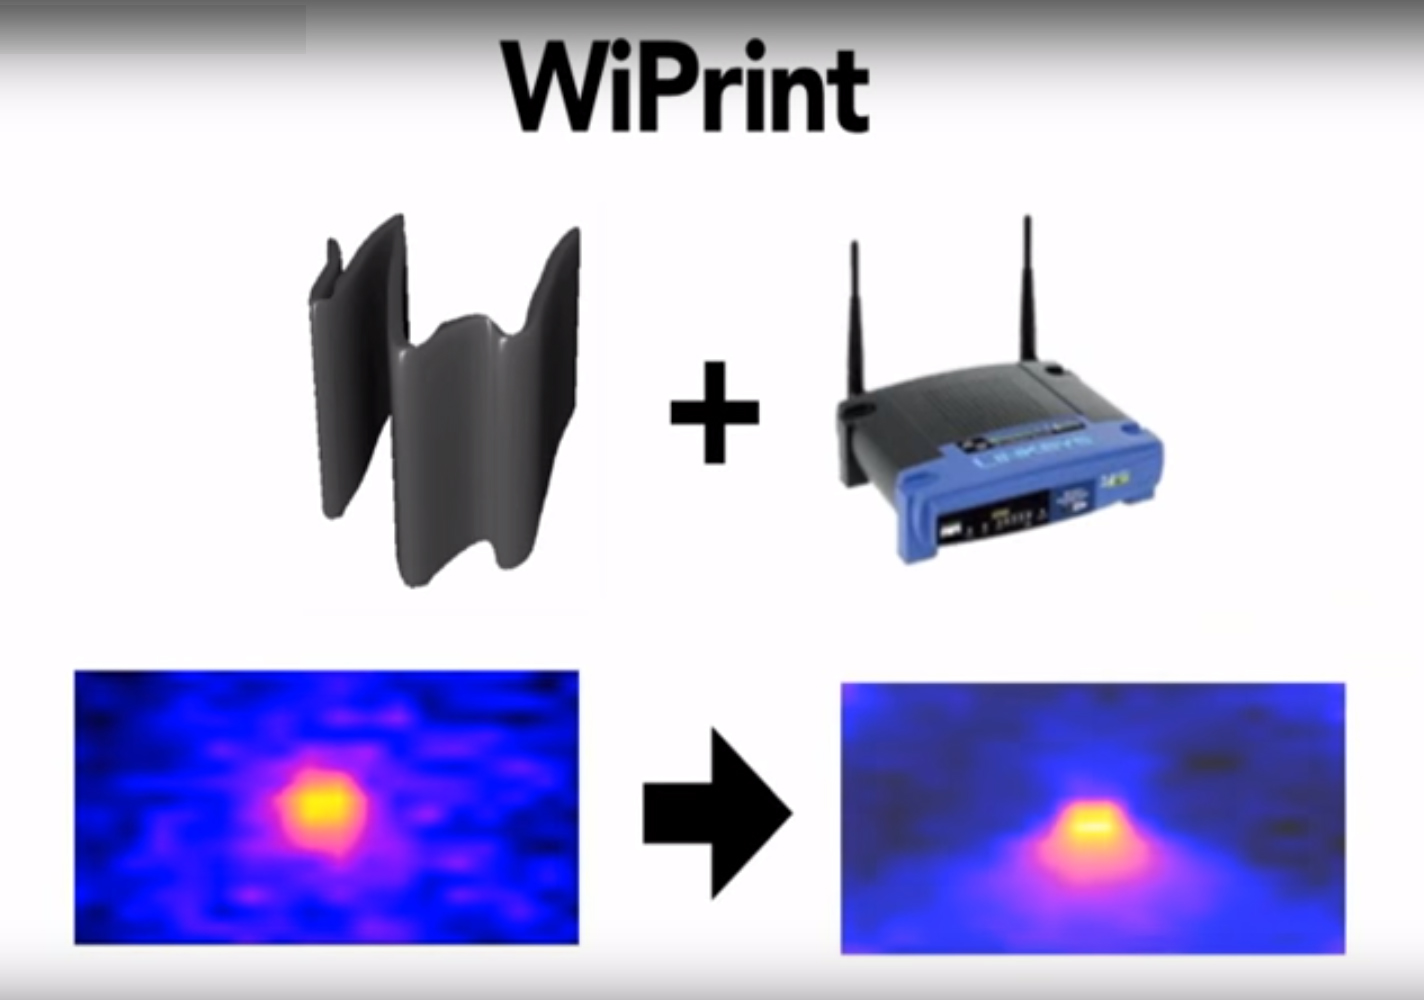 Tin foil hat for your Wi-Fi